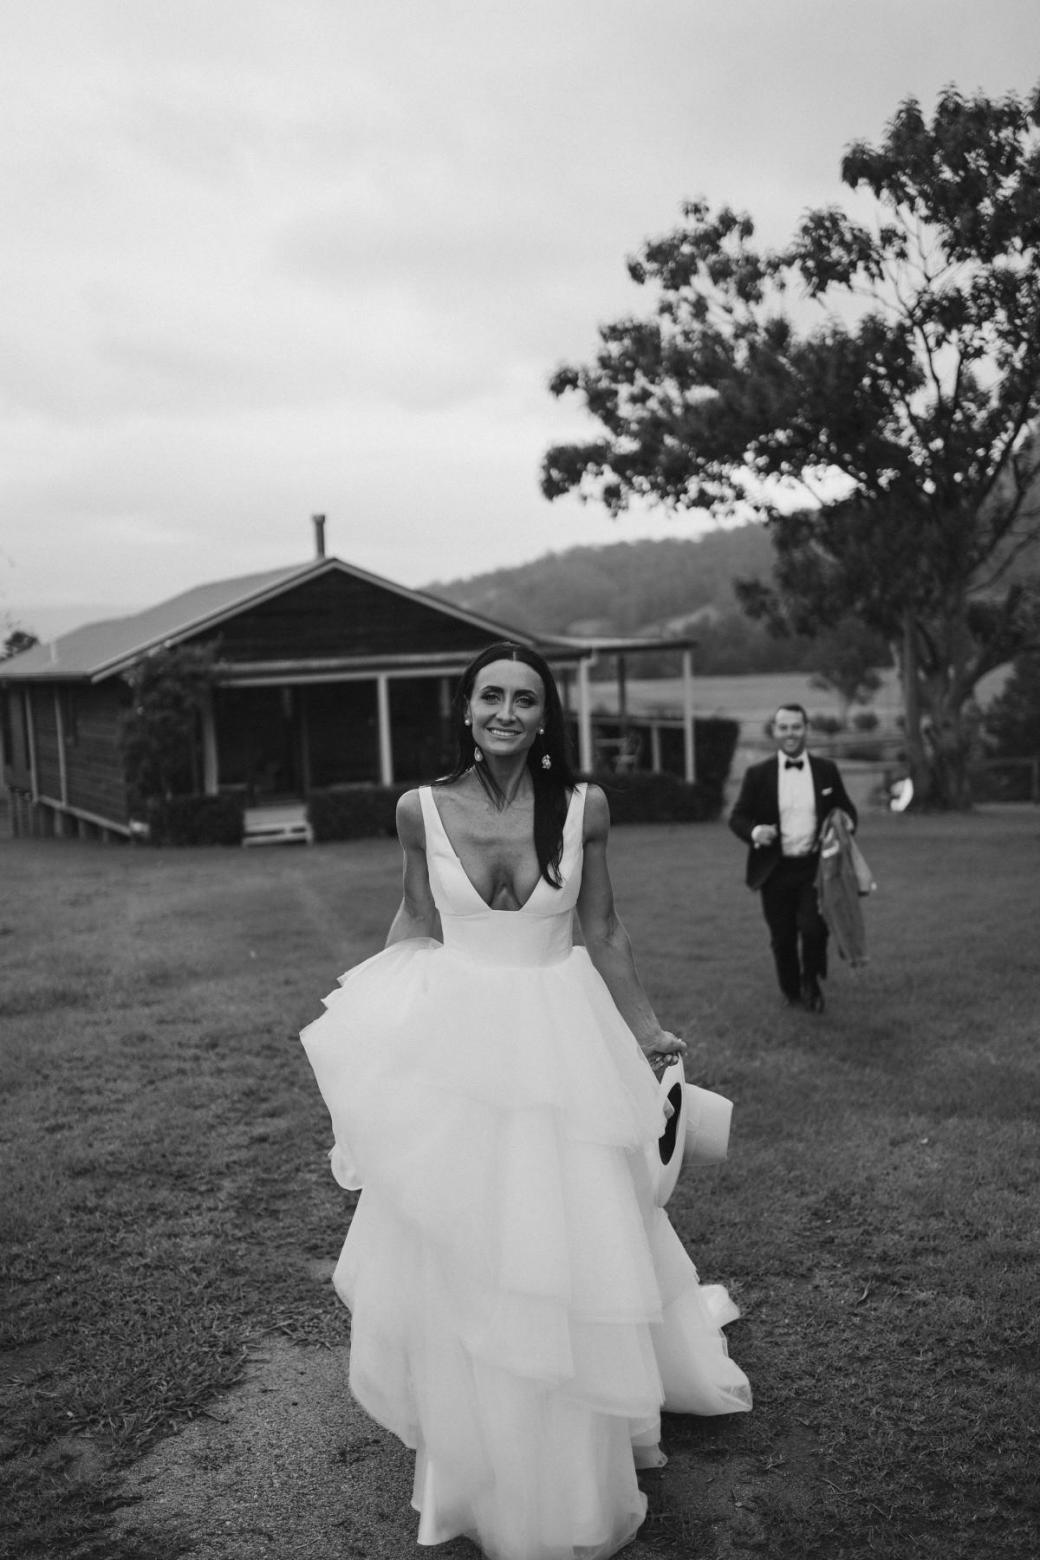 Real bride Sarah wears the Taryn Marina gown, a Bespoke wedding dress by Karen Willis Holmes.